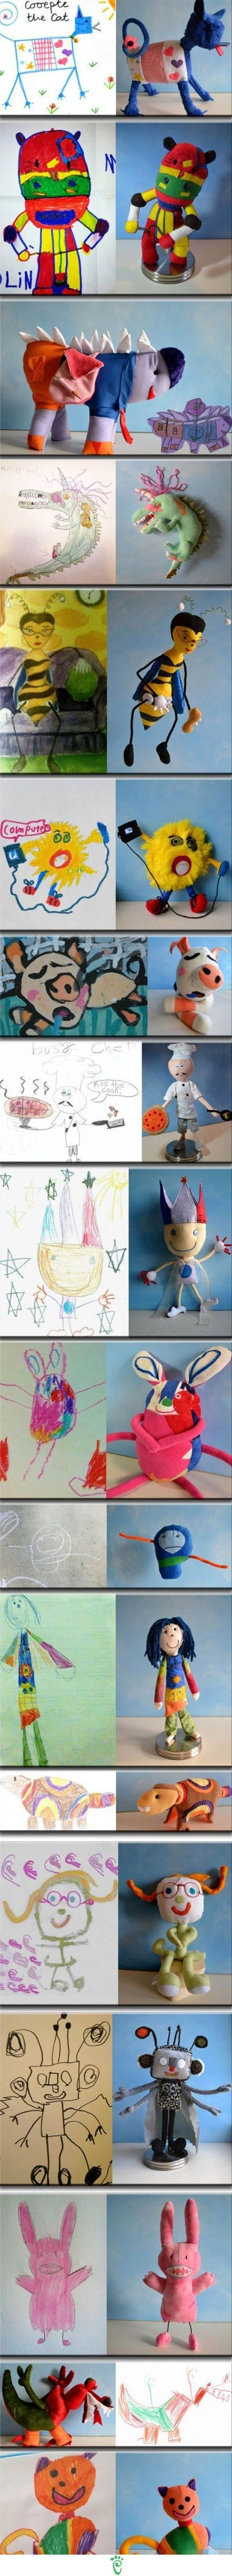 Stuffed creatures from kids drawings